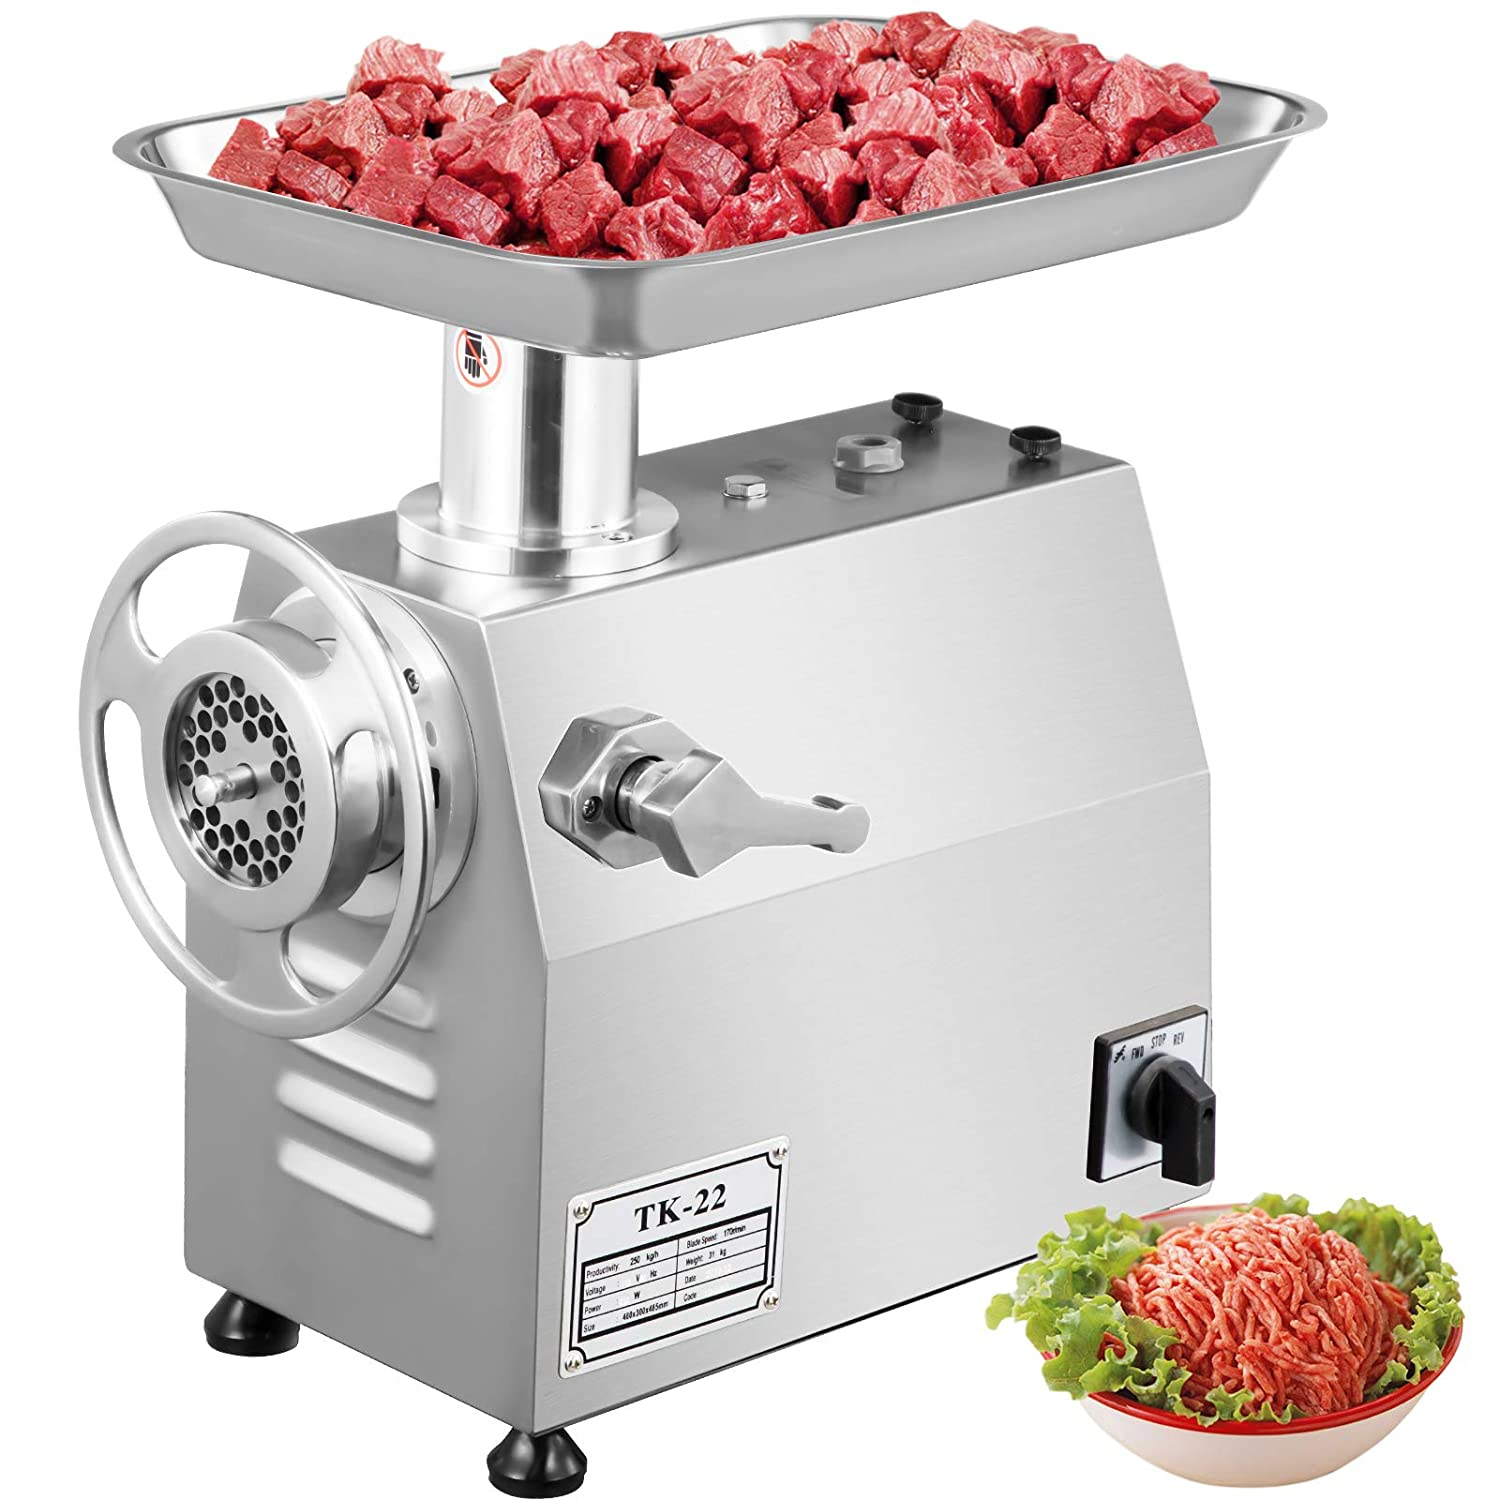 Happybuy Electric Meat New product!! Grinder 850W Commercial H Sausage 550Lbs Award-winning store